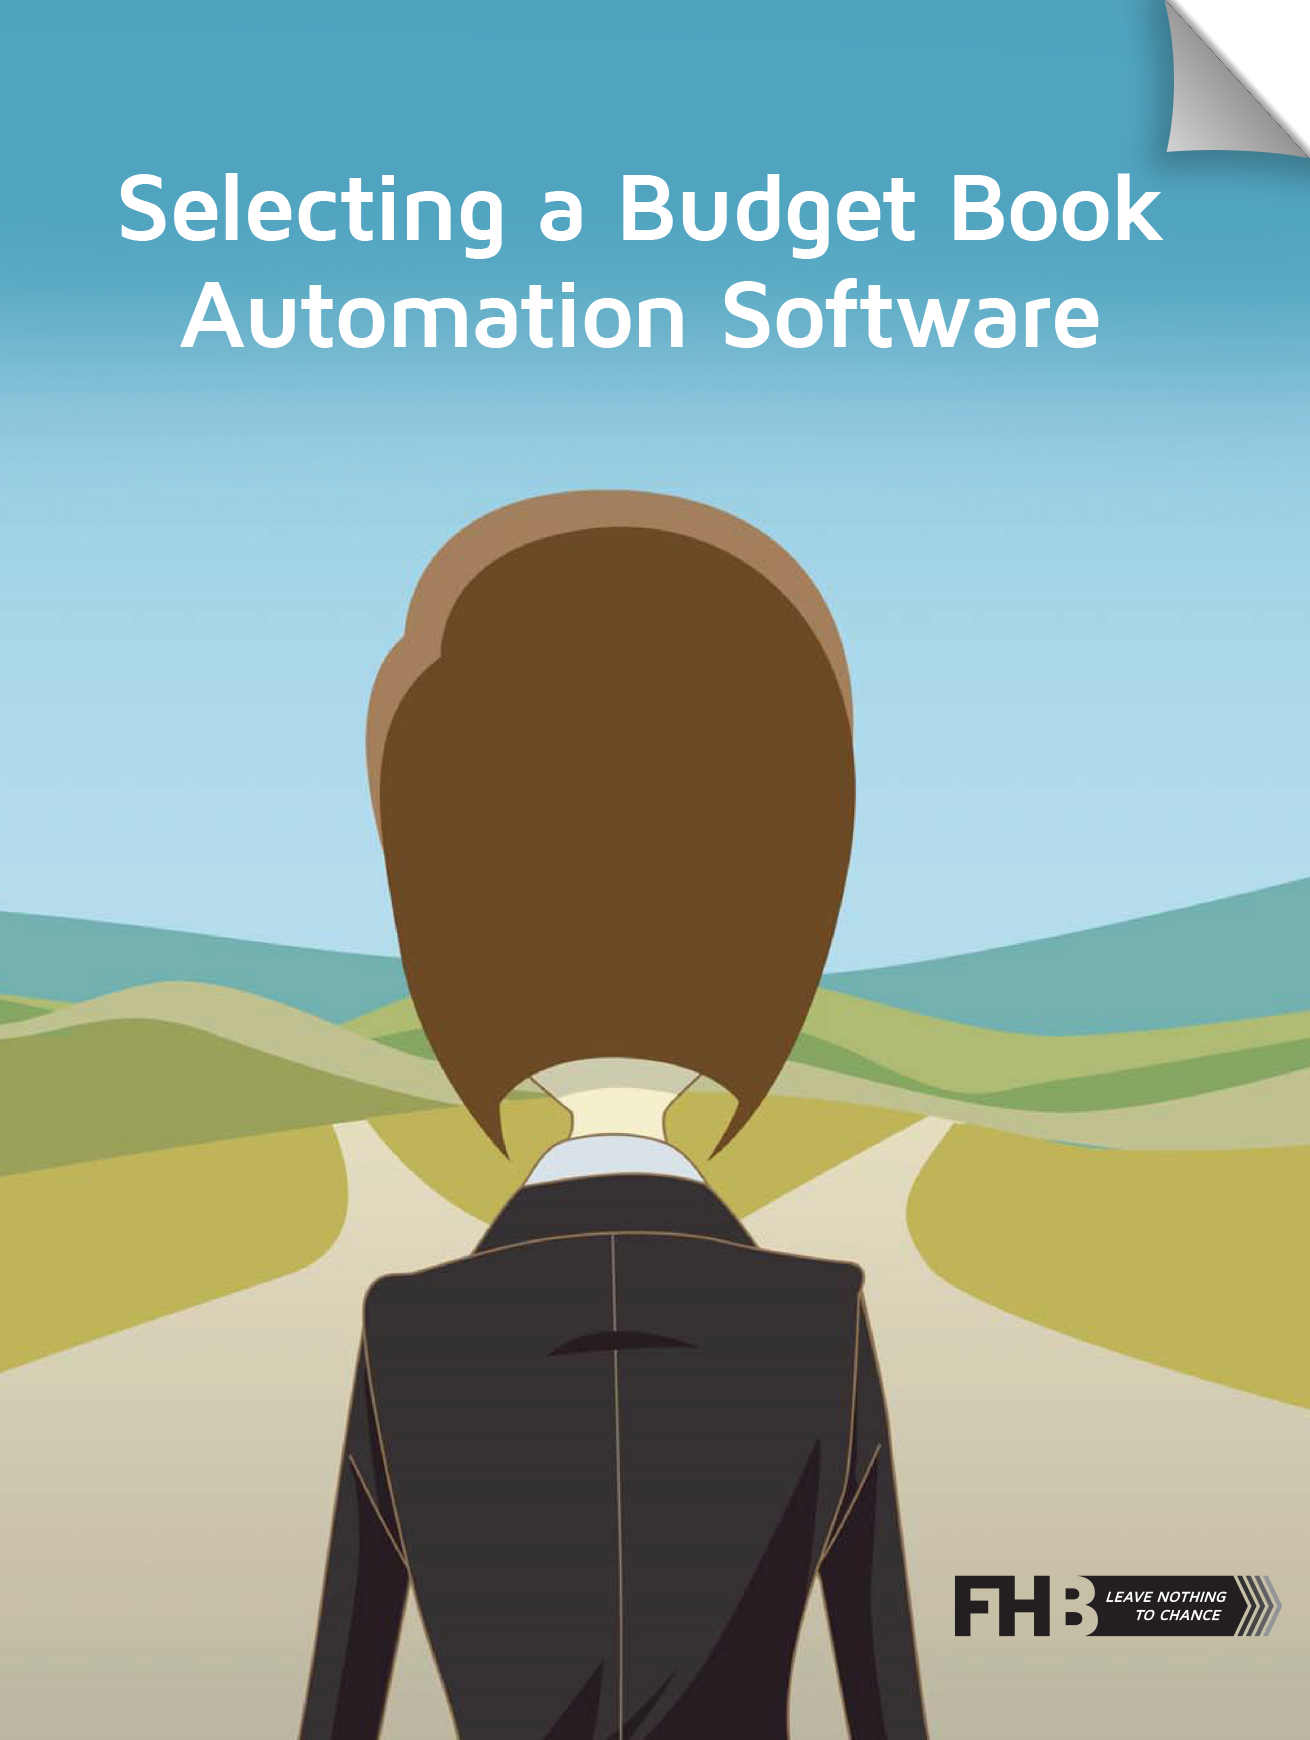 eBook Budget Book Cover with title CTA page Curl 15